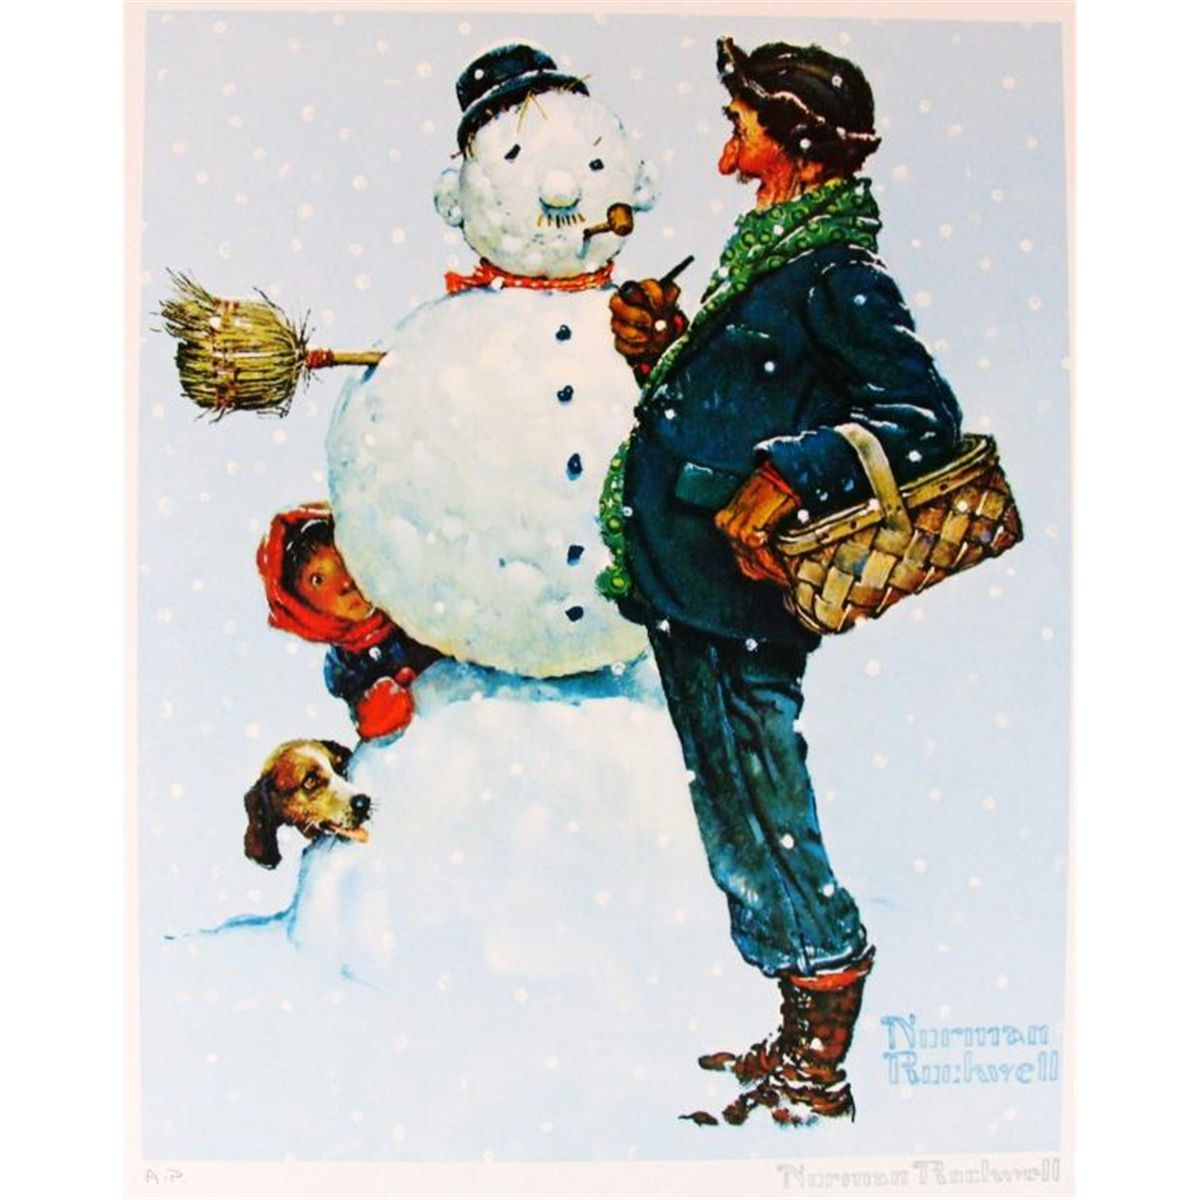 SNOW SCULPTING NORMAN ROCKWELL SNOWMAN ART